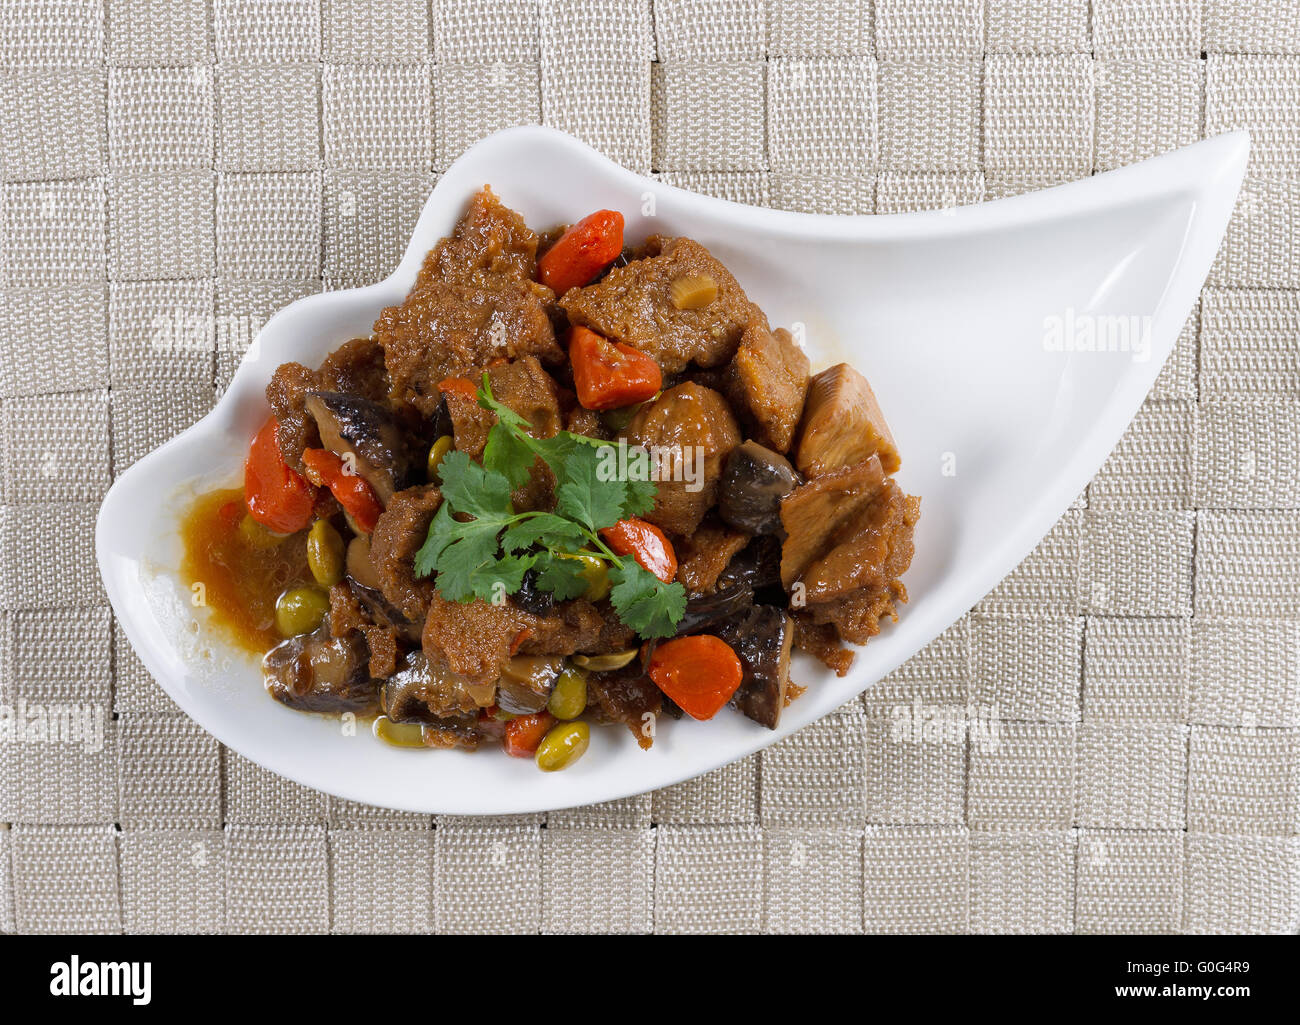 Tofu and vegetables with sauce in small bowl ready to eat - Stock Image